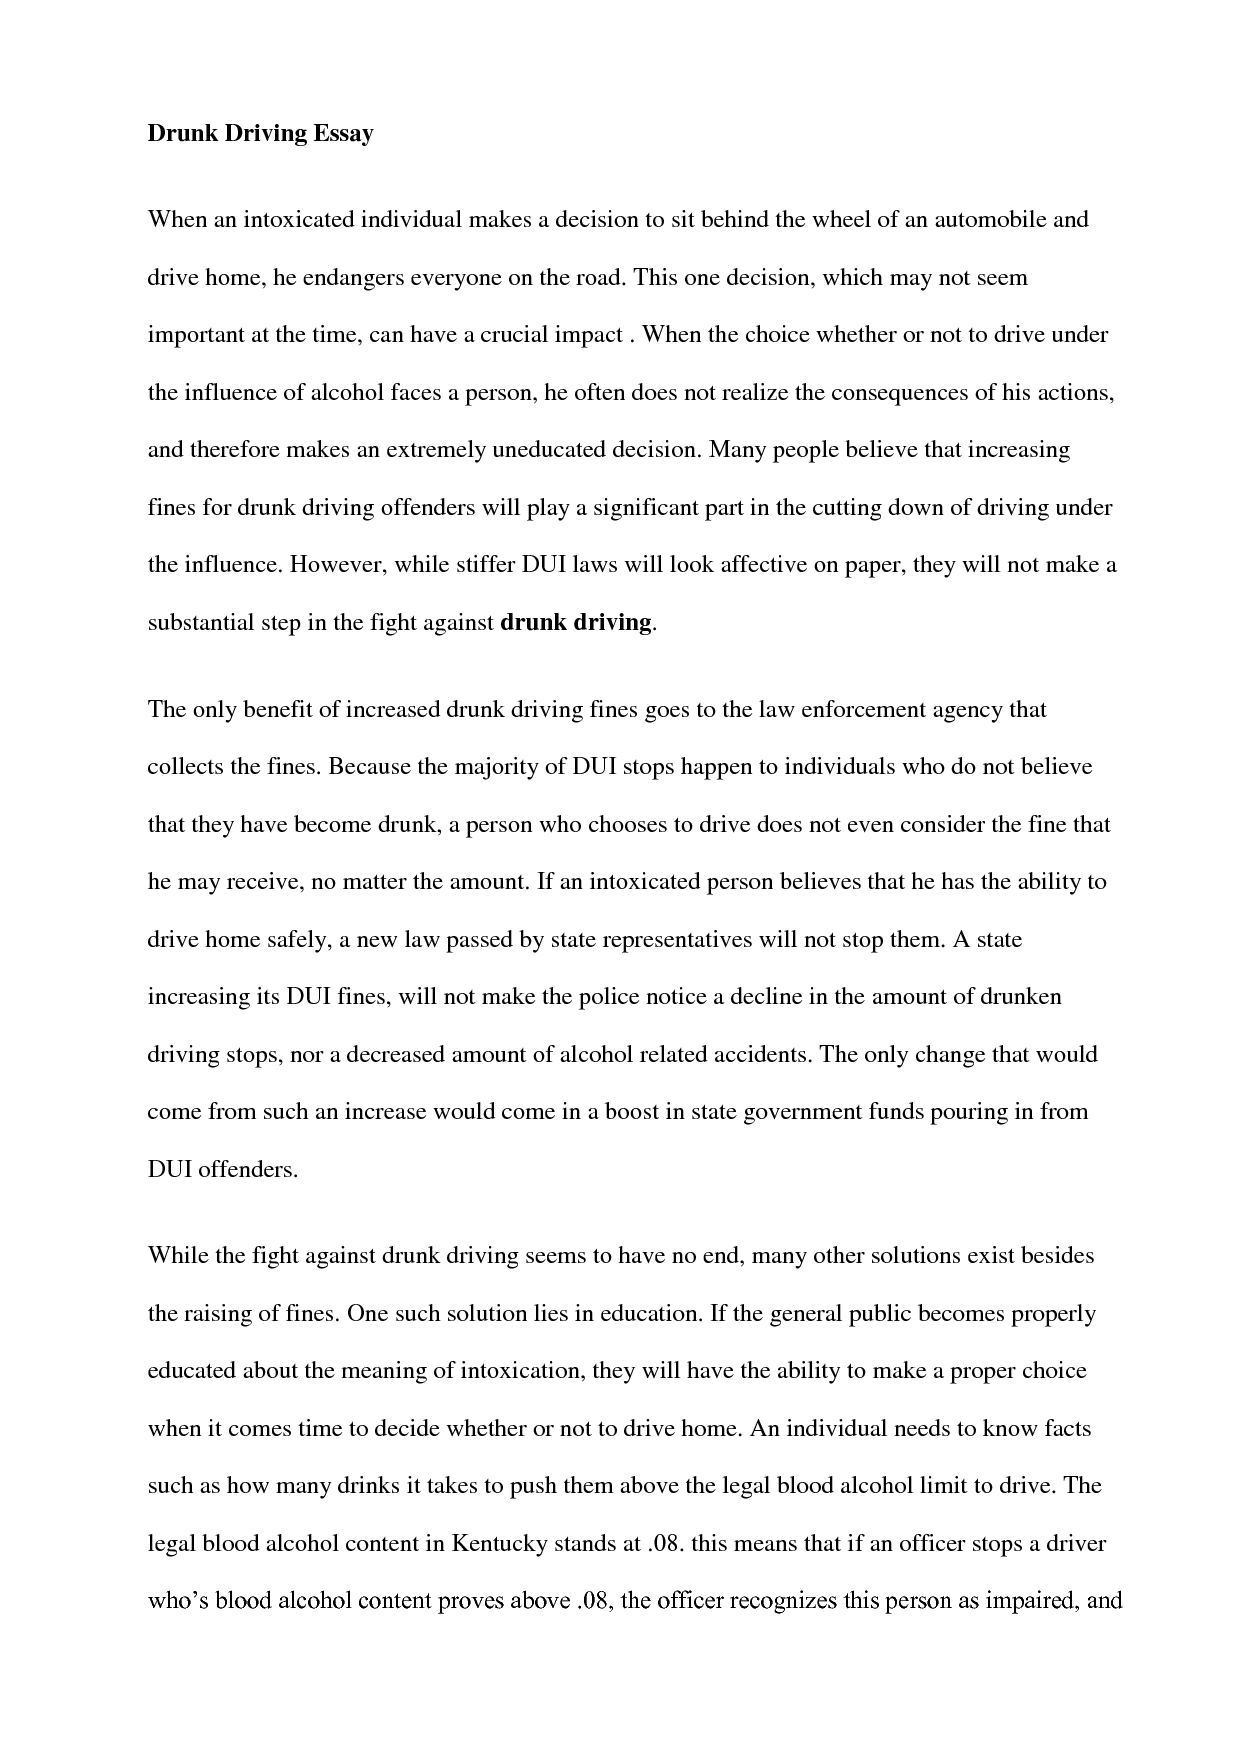 essay about drunk driving